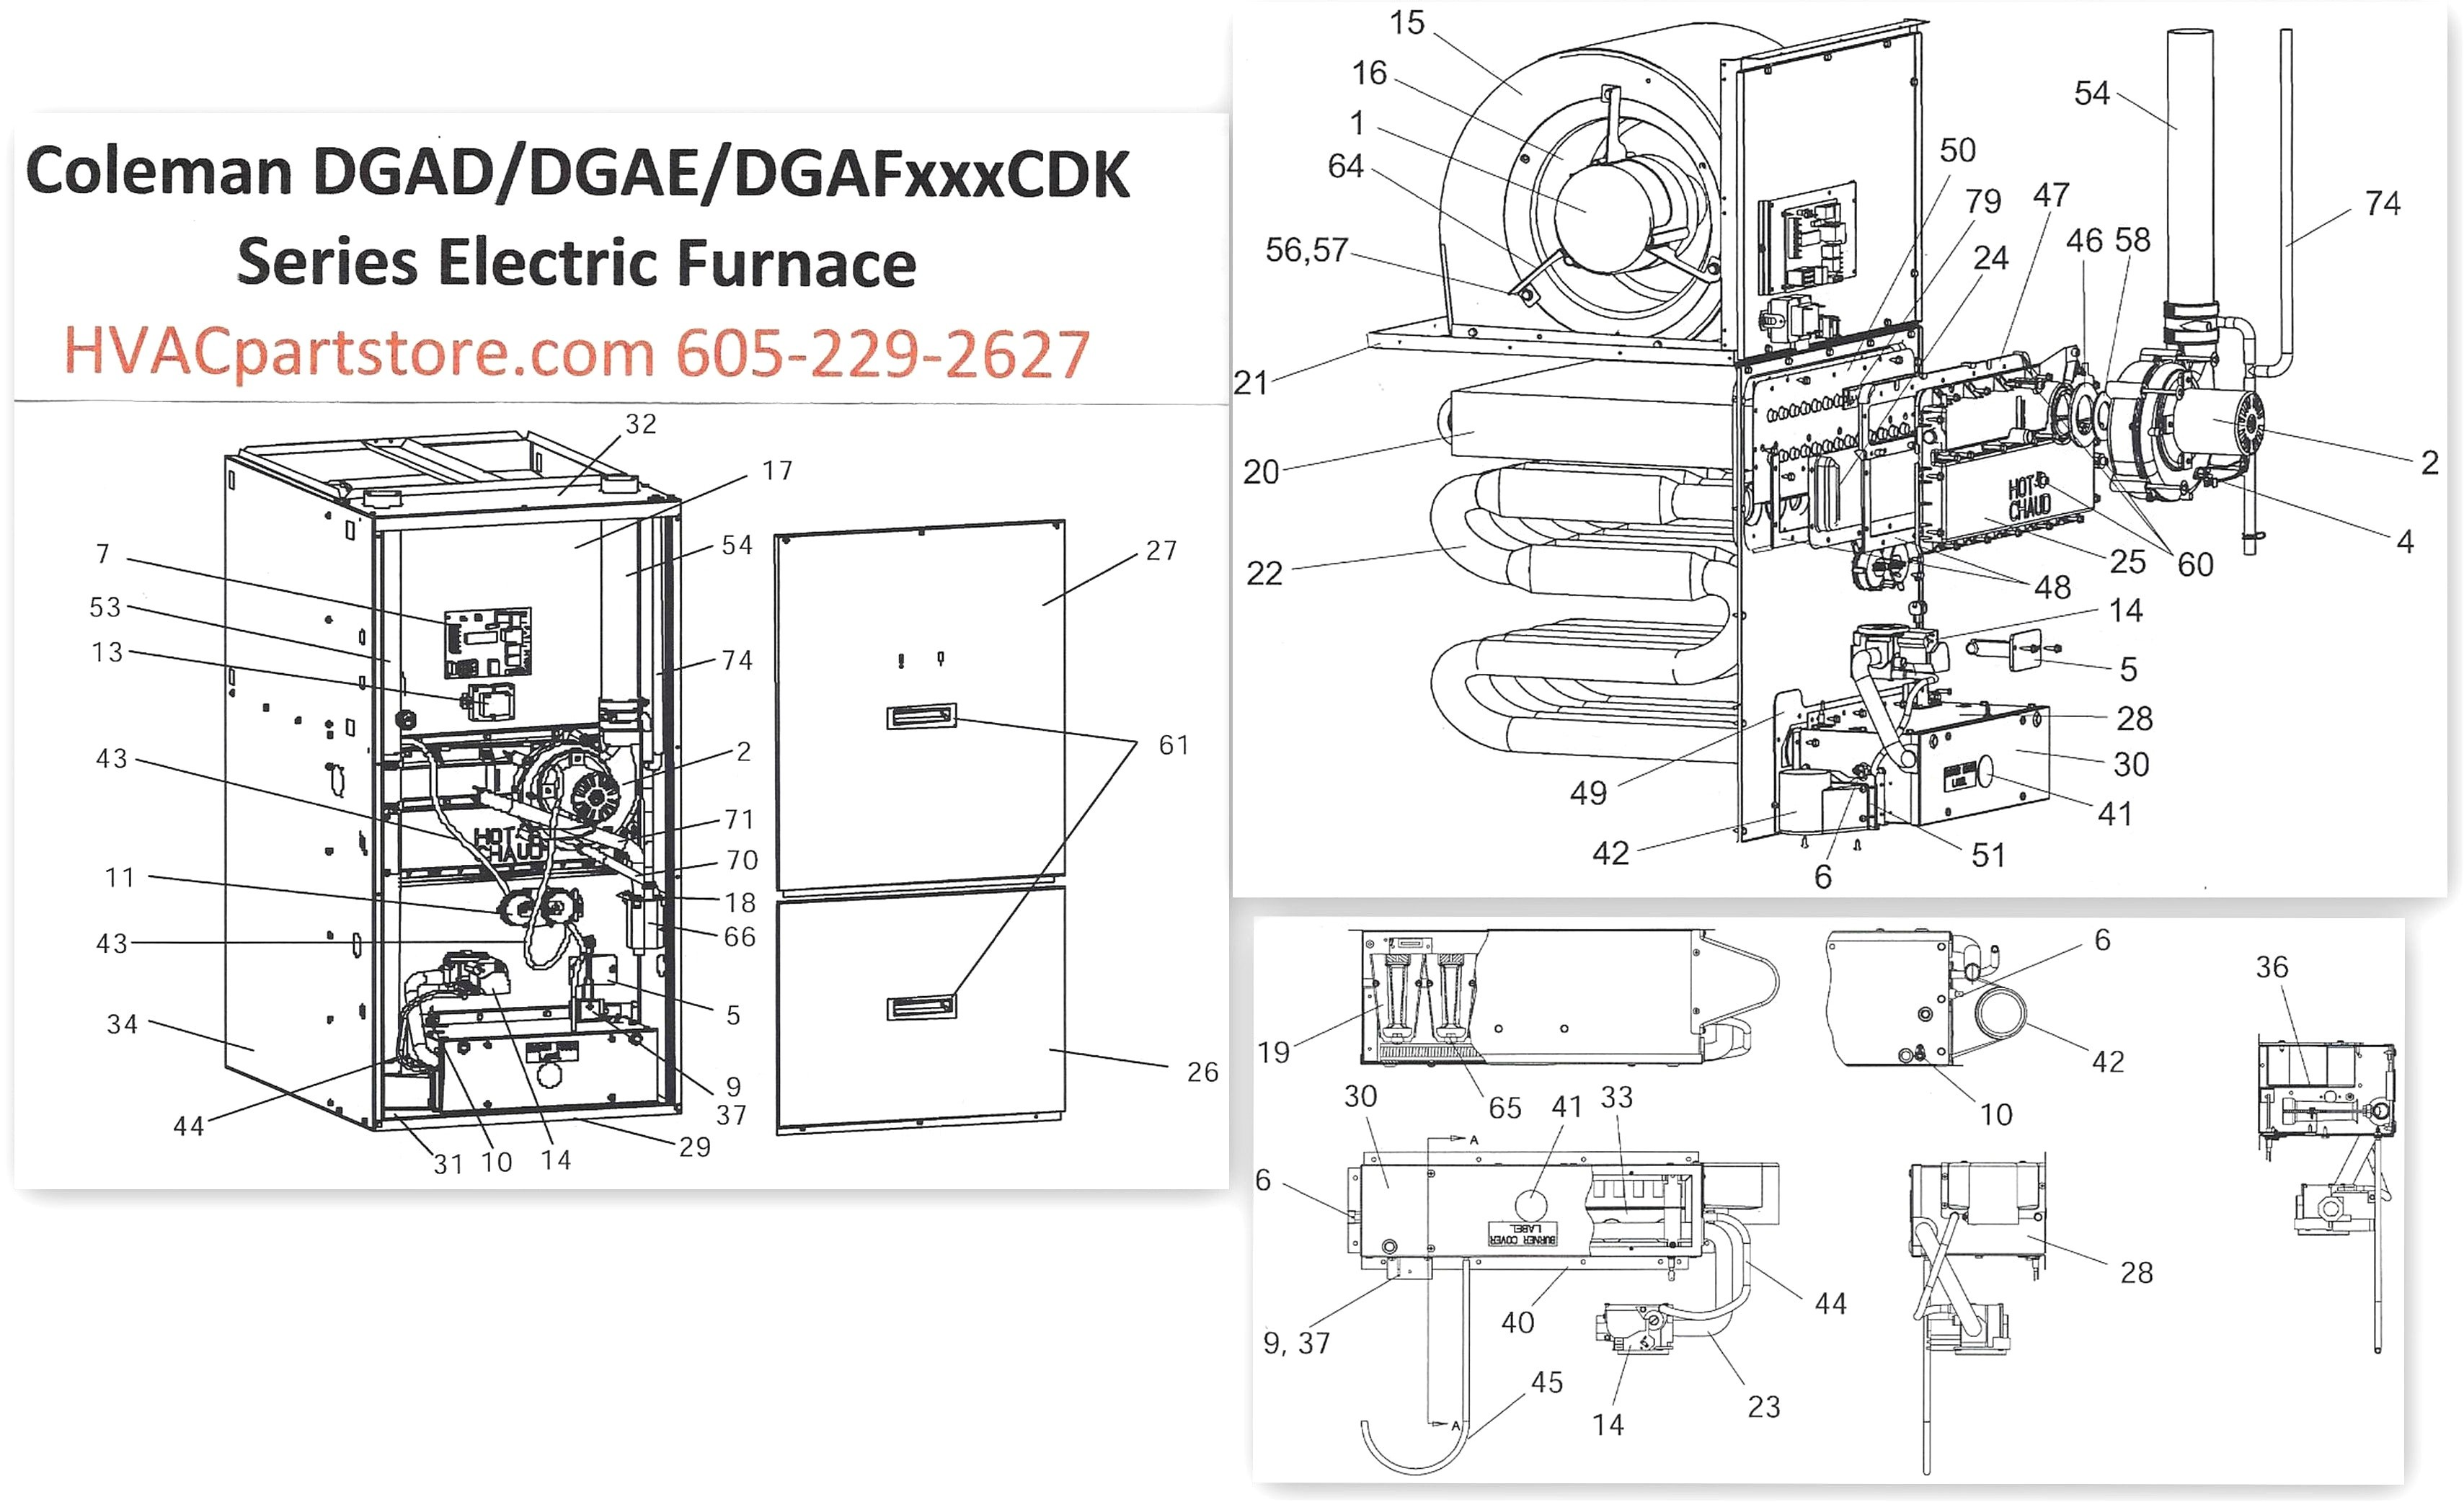 atwood water heater gc6aa 10e wiring diagram - wiring diagram suburban rv water heater wiring diagrams